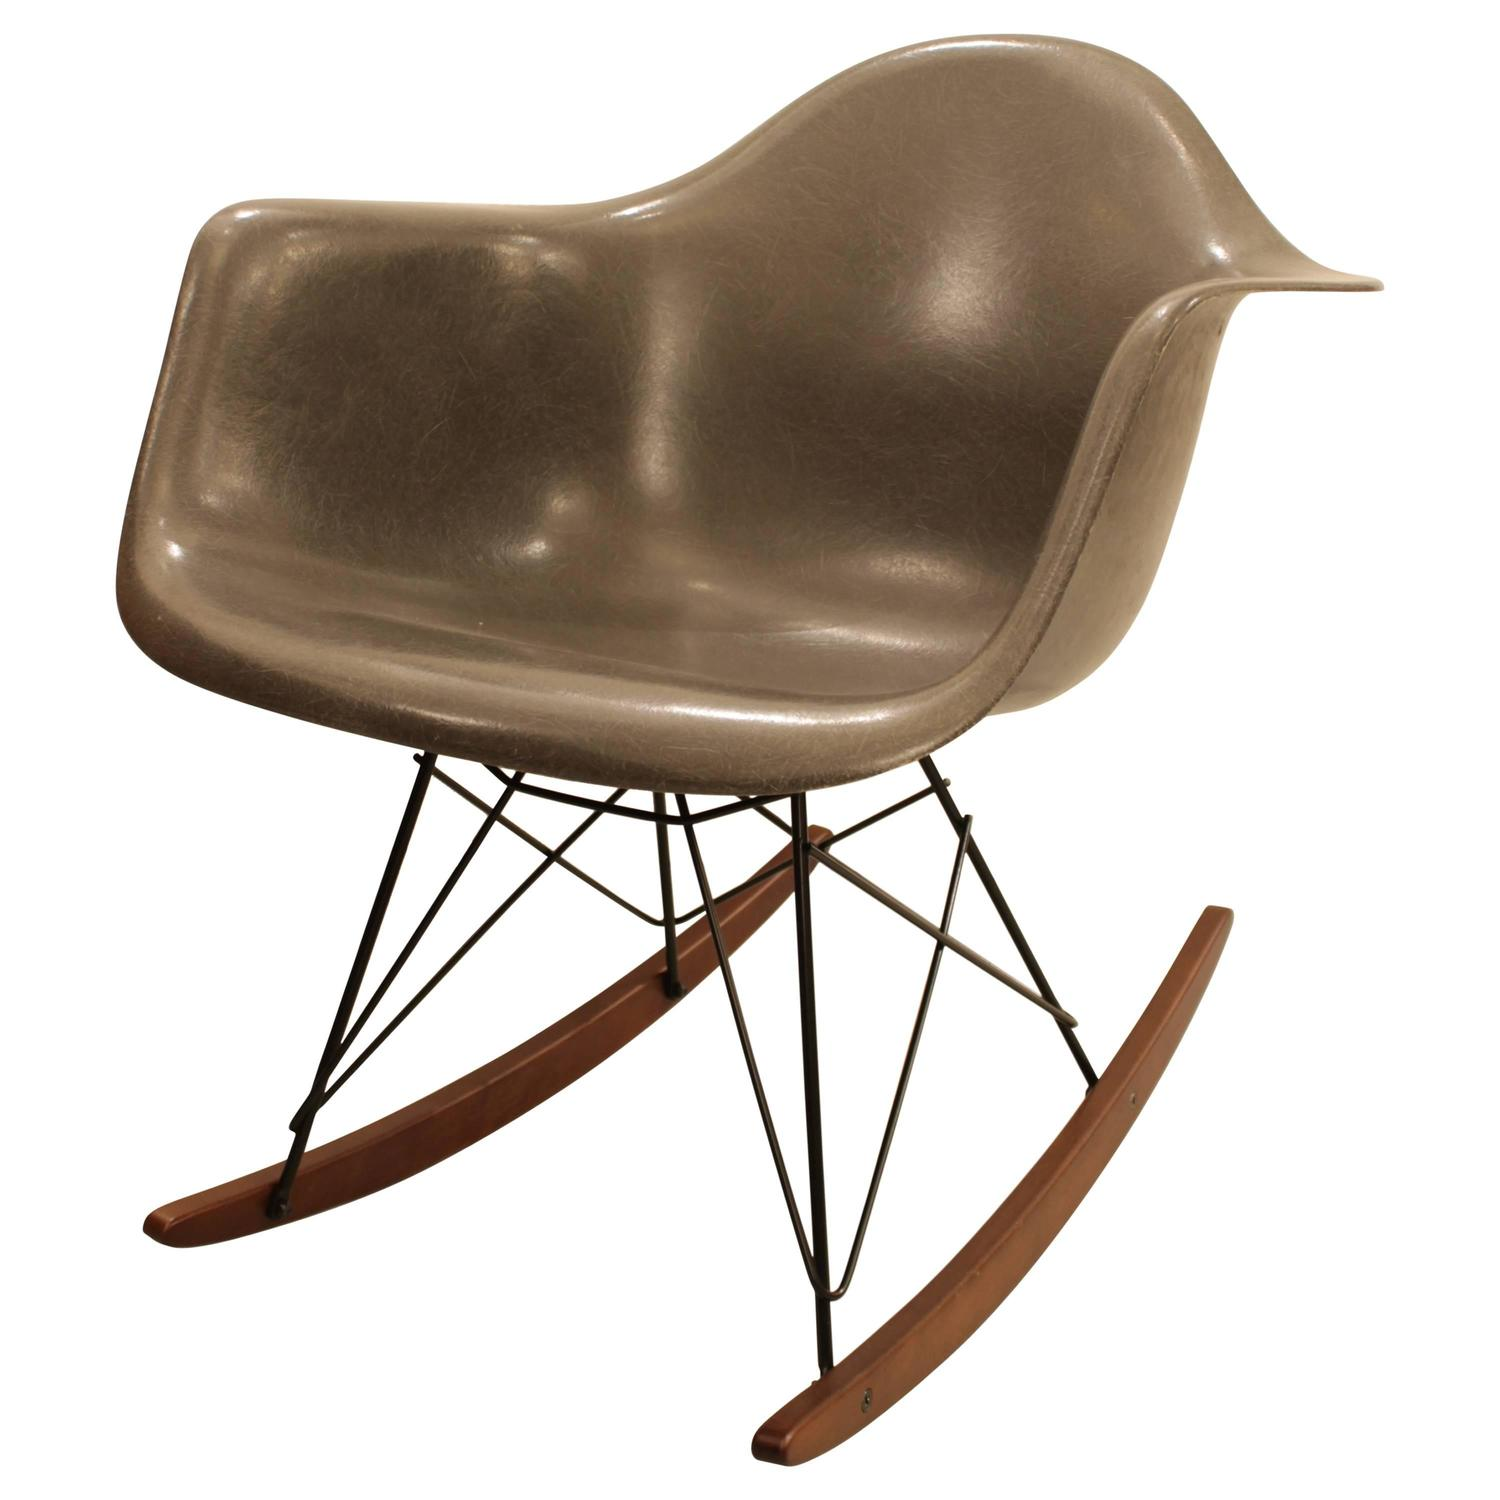 charles ray eames rar fauteuil bascule les illumin s design. Black Bedroom Furniture Sets. Home Design Ideas